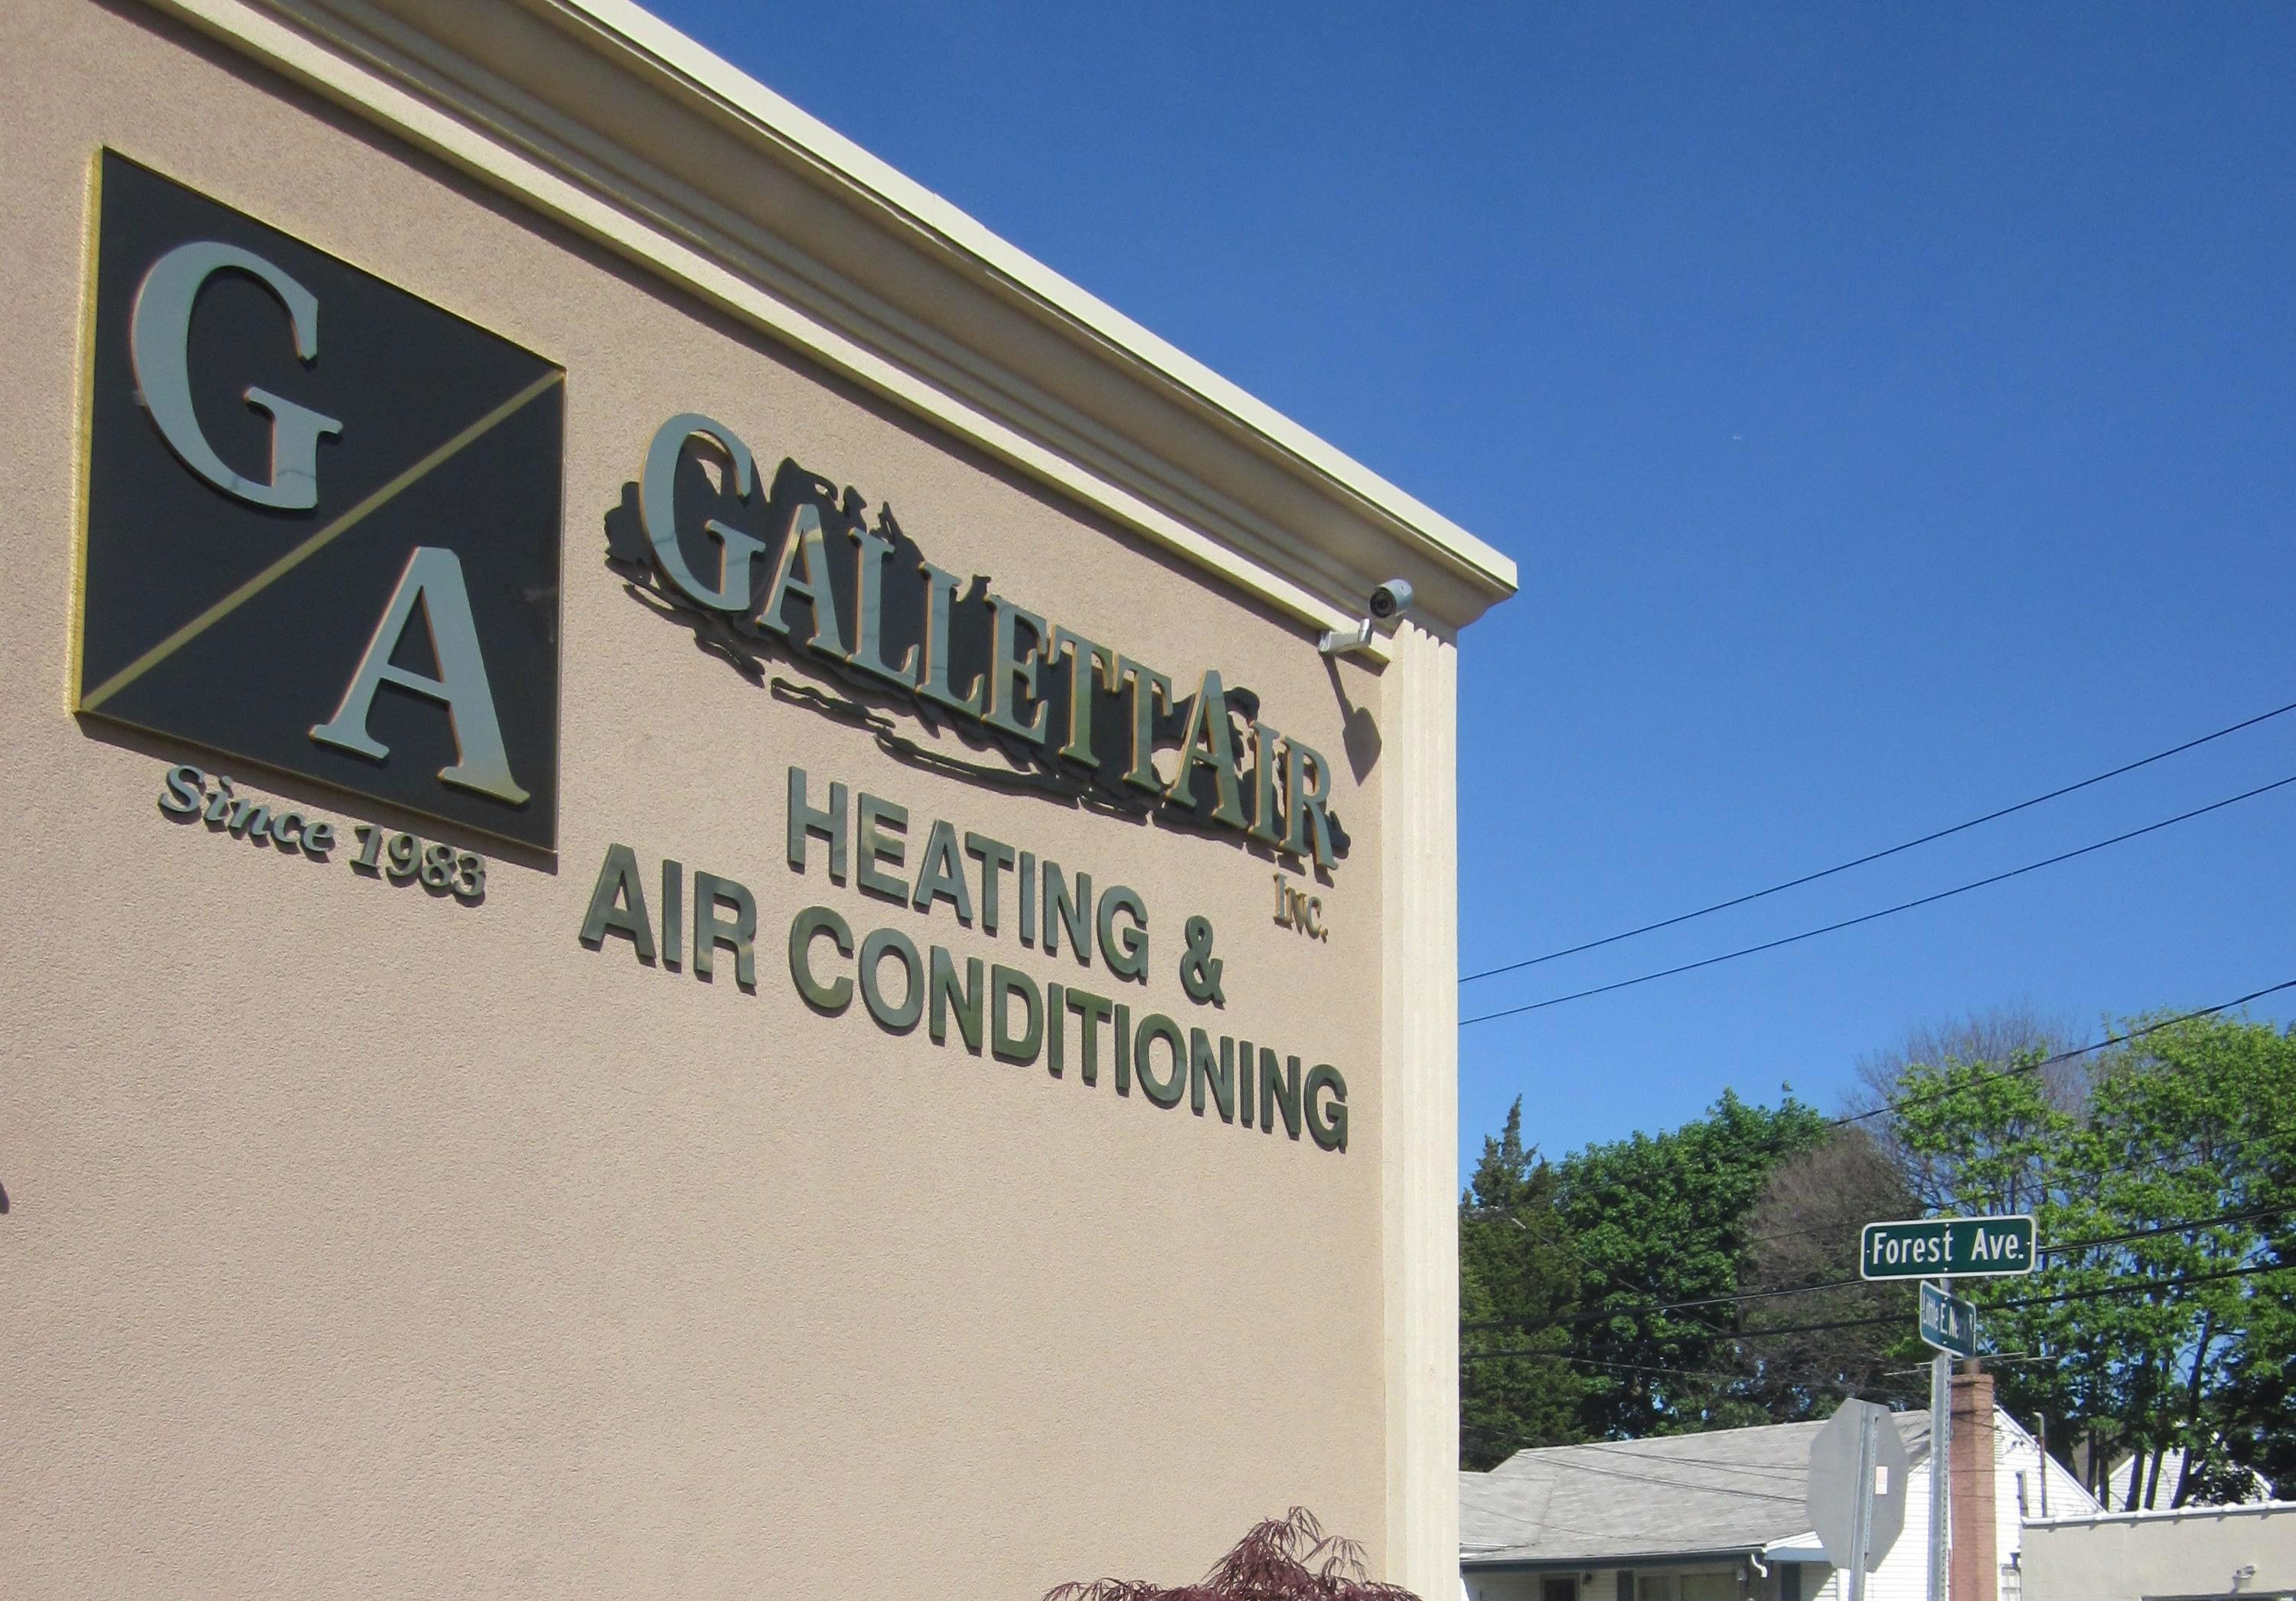 HVAC service done with the customer's comfort in mind